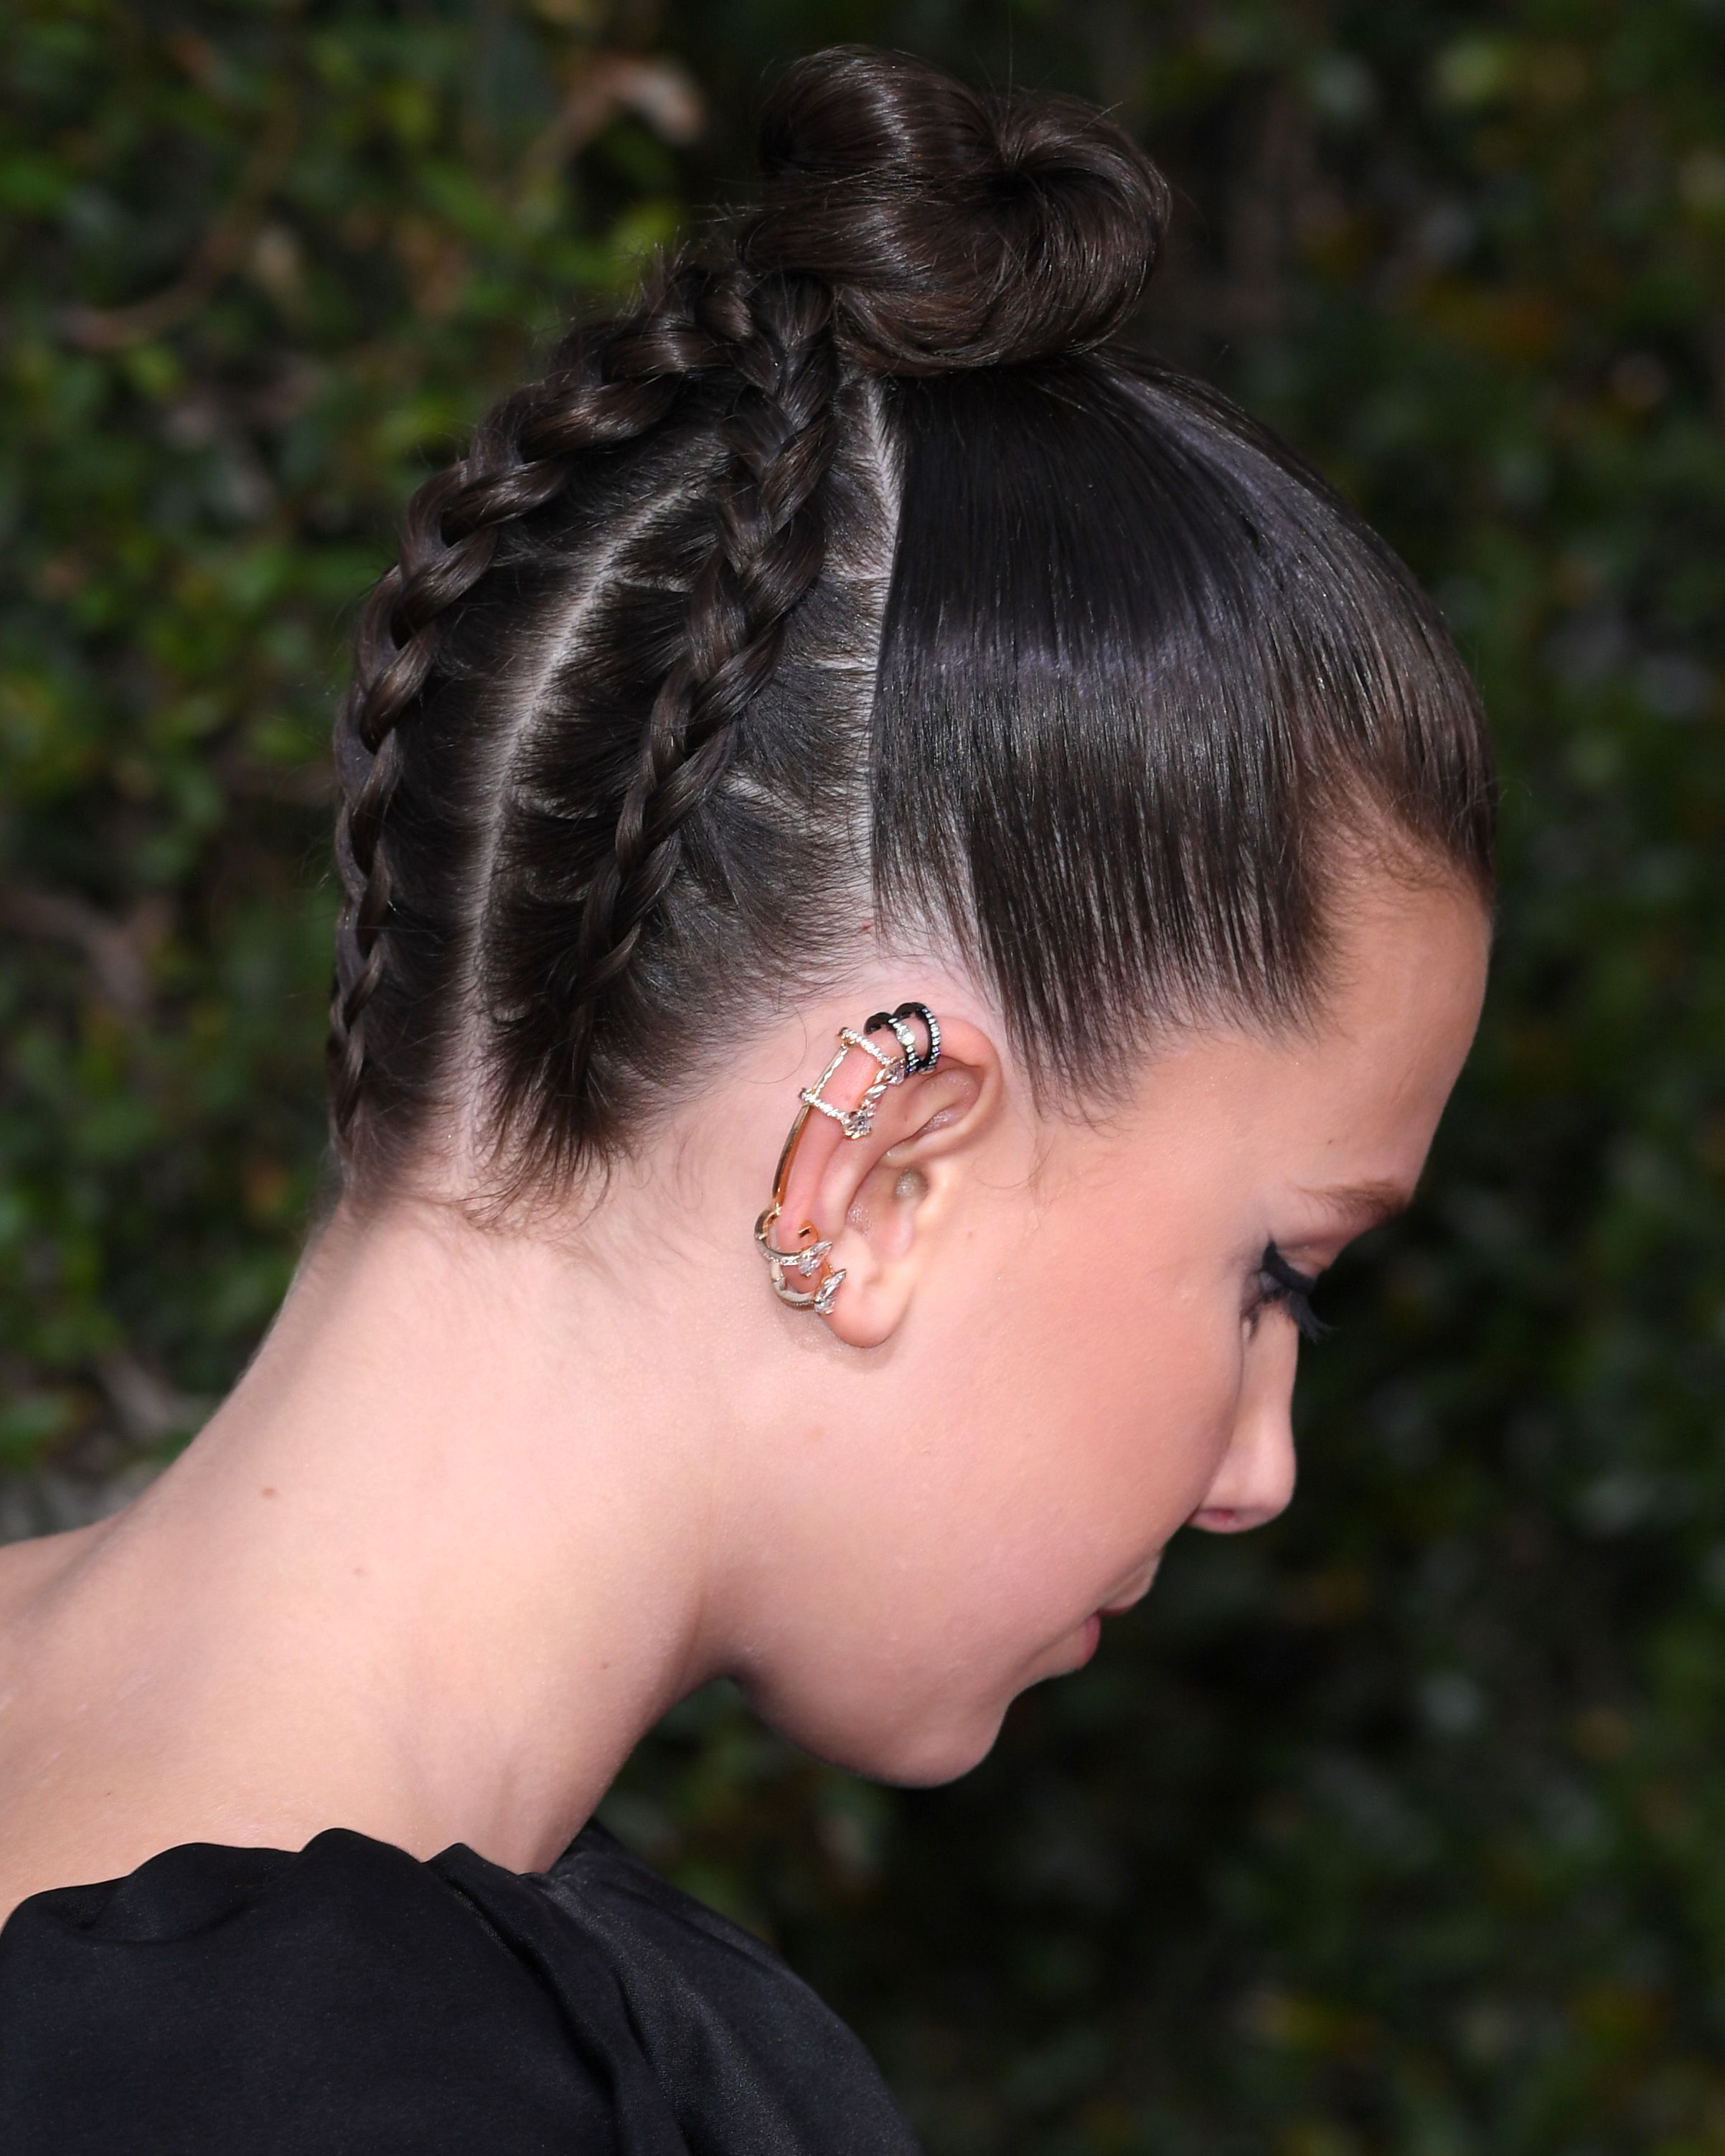 12 Top Knot Hairstyle Ideas For Your Next Epic Updo